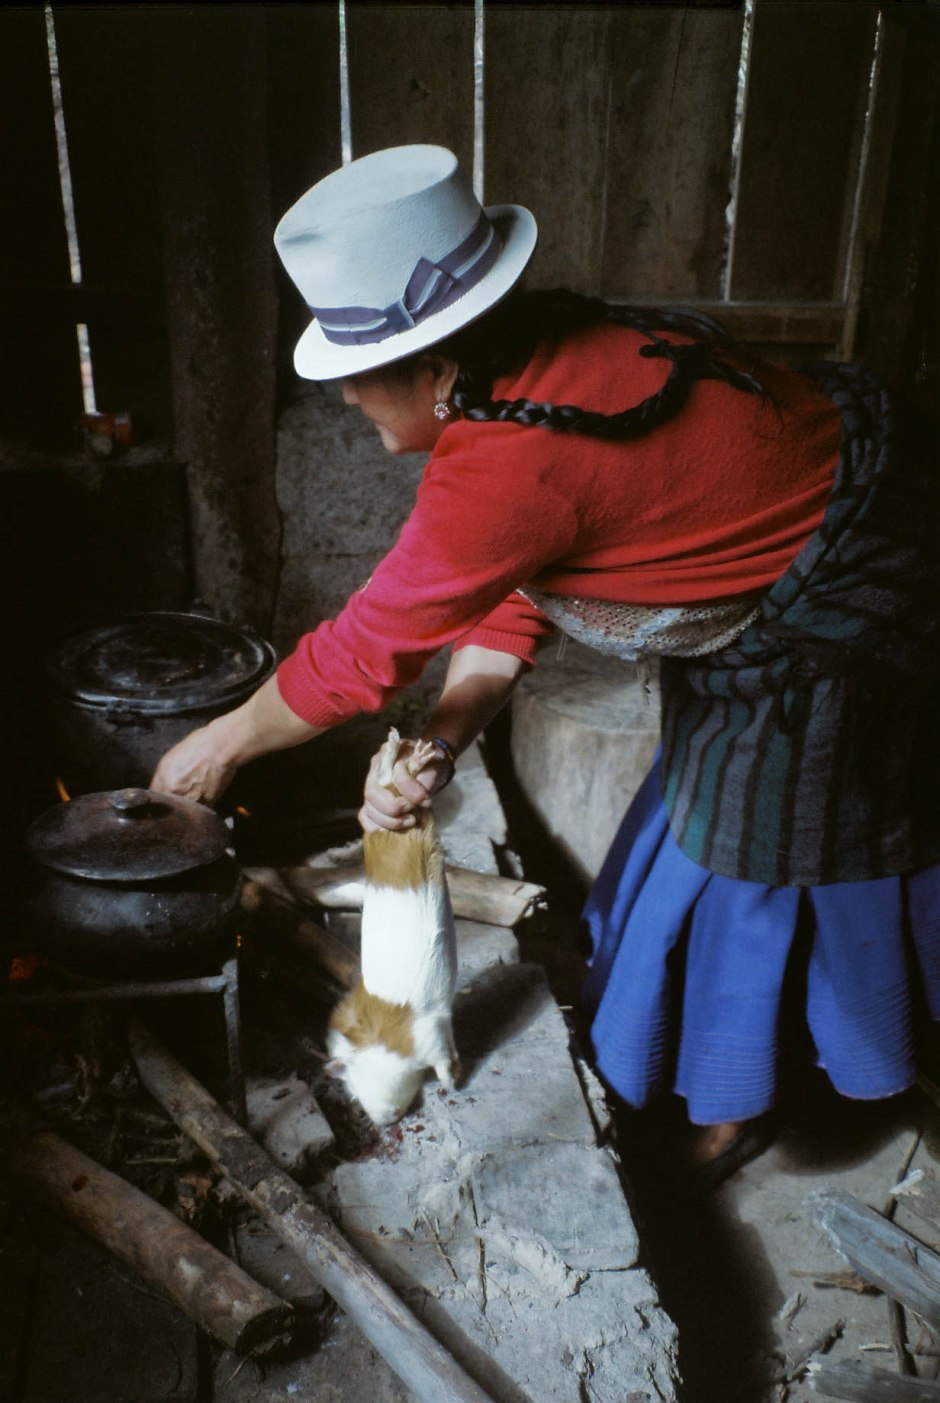 A compañera del campo (companion of the countryside) drains the blood out of a cuy (guinea pig) in preparation for cooking. Chilca Totora, Ecuador.